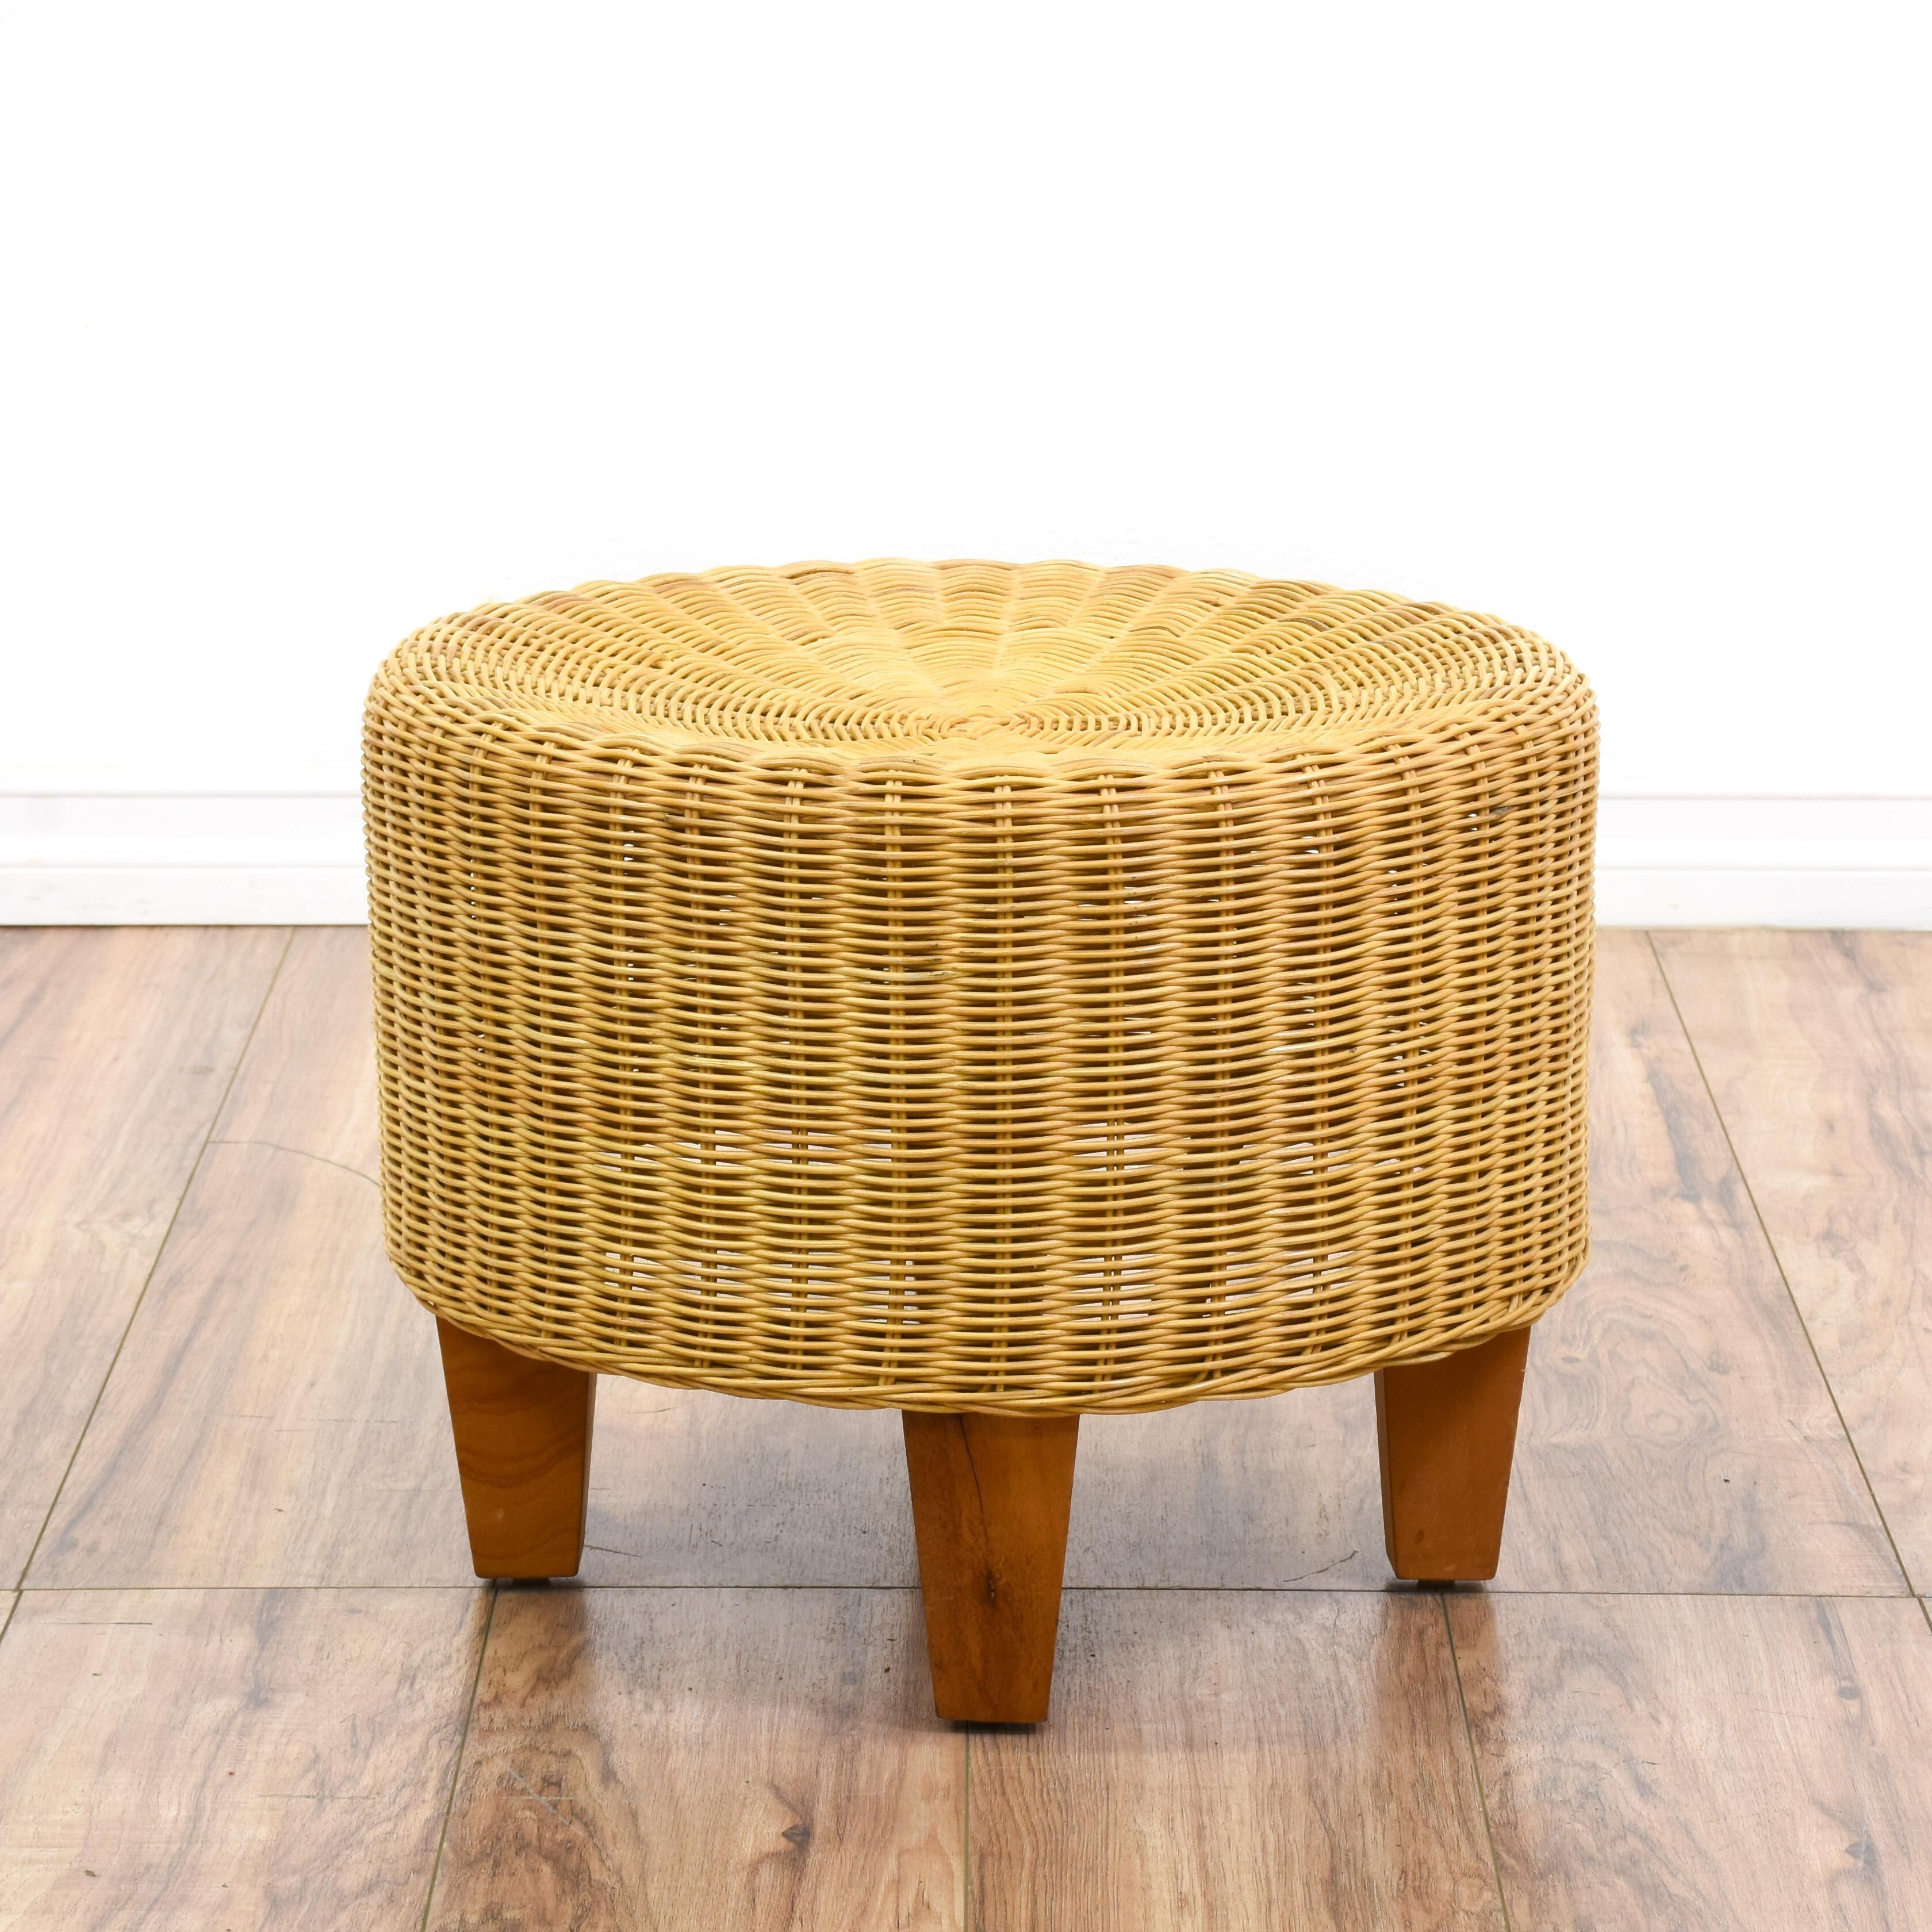 21 Best Collection Round Wicker Ottoman Home Decor And Garden Ideas Wicker Ottoman Ottoman Footstool Leather Ottoman Coffee Table [ 3360 x 3360 Pixel ]